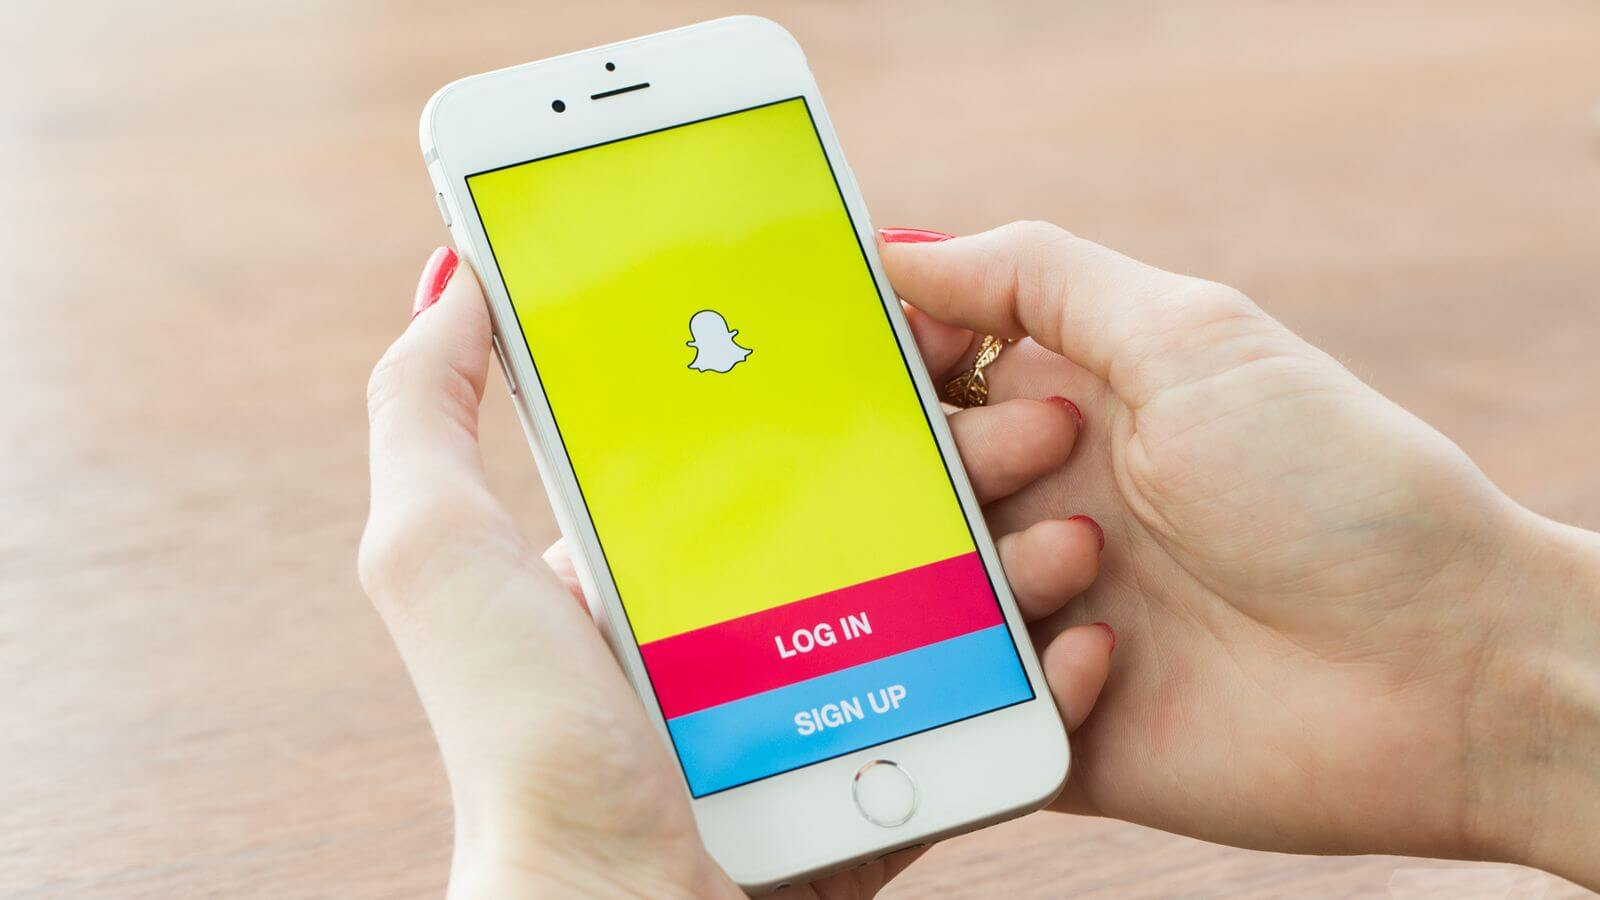 Snapchat app login on an iphone